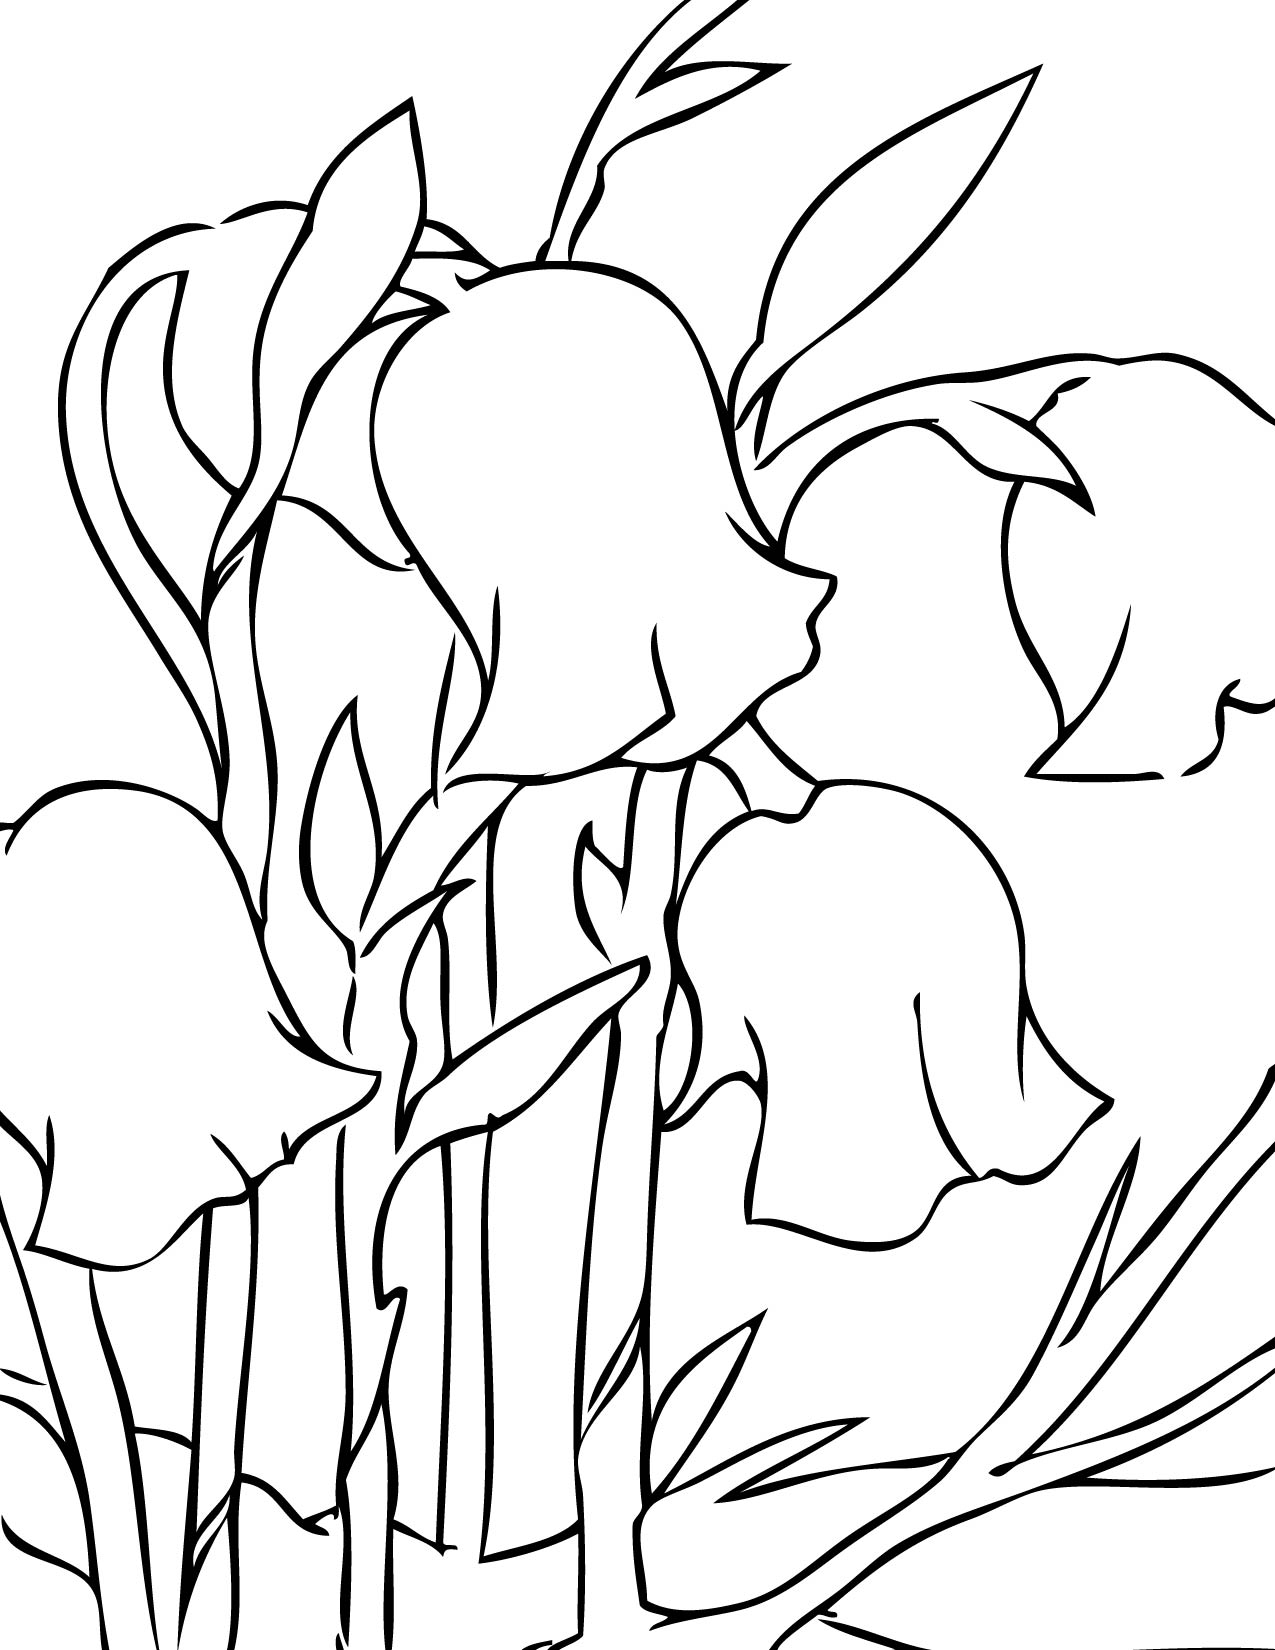 spring flowers coloring pages - handipoints - Coloring Pages Spring Flowers